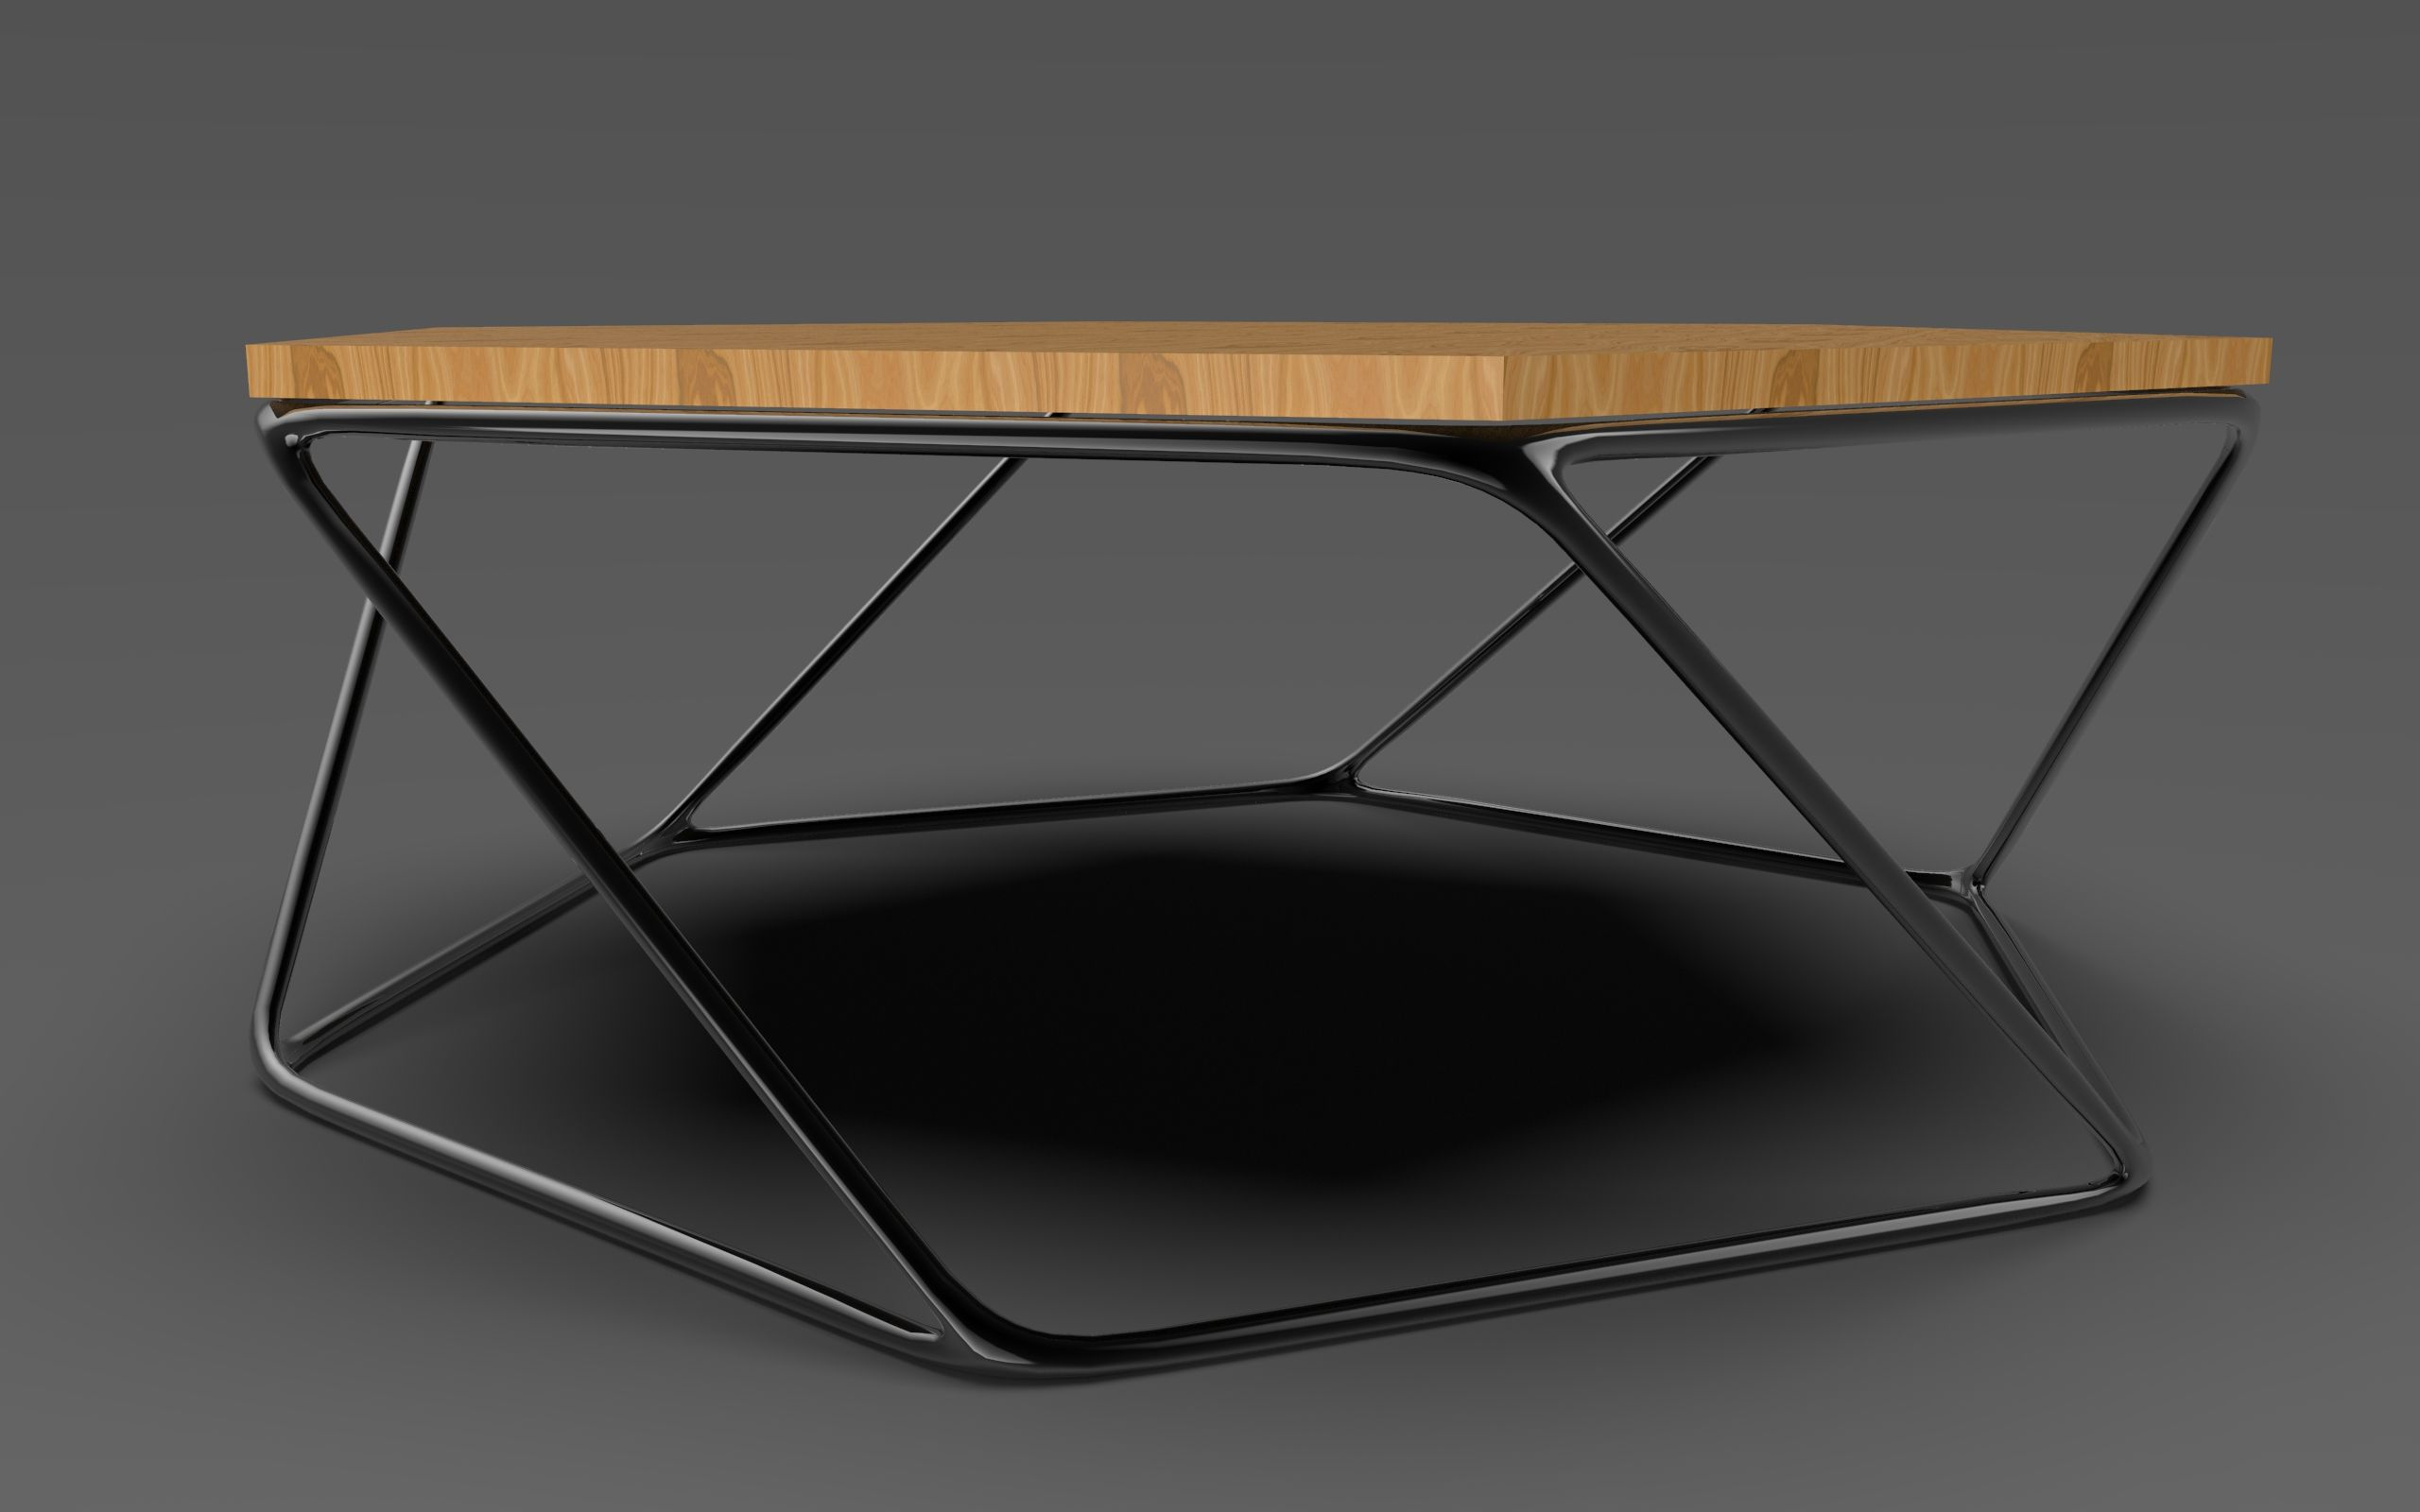 Coffee-table-ideas---fabrica-de-nerdes-lcs192-3500-3500